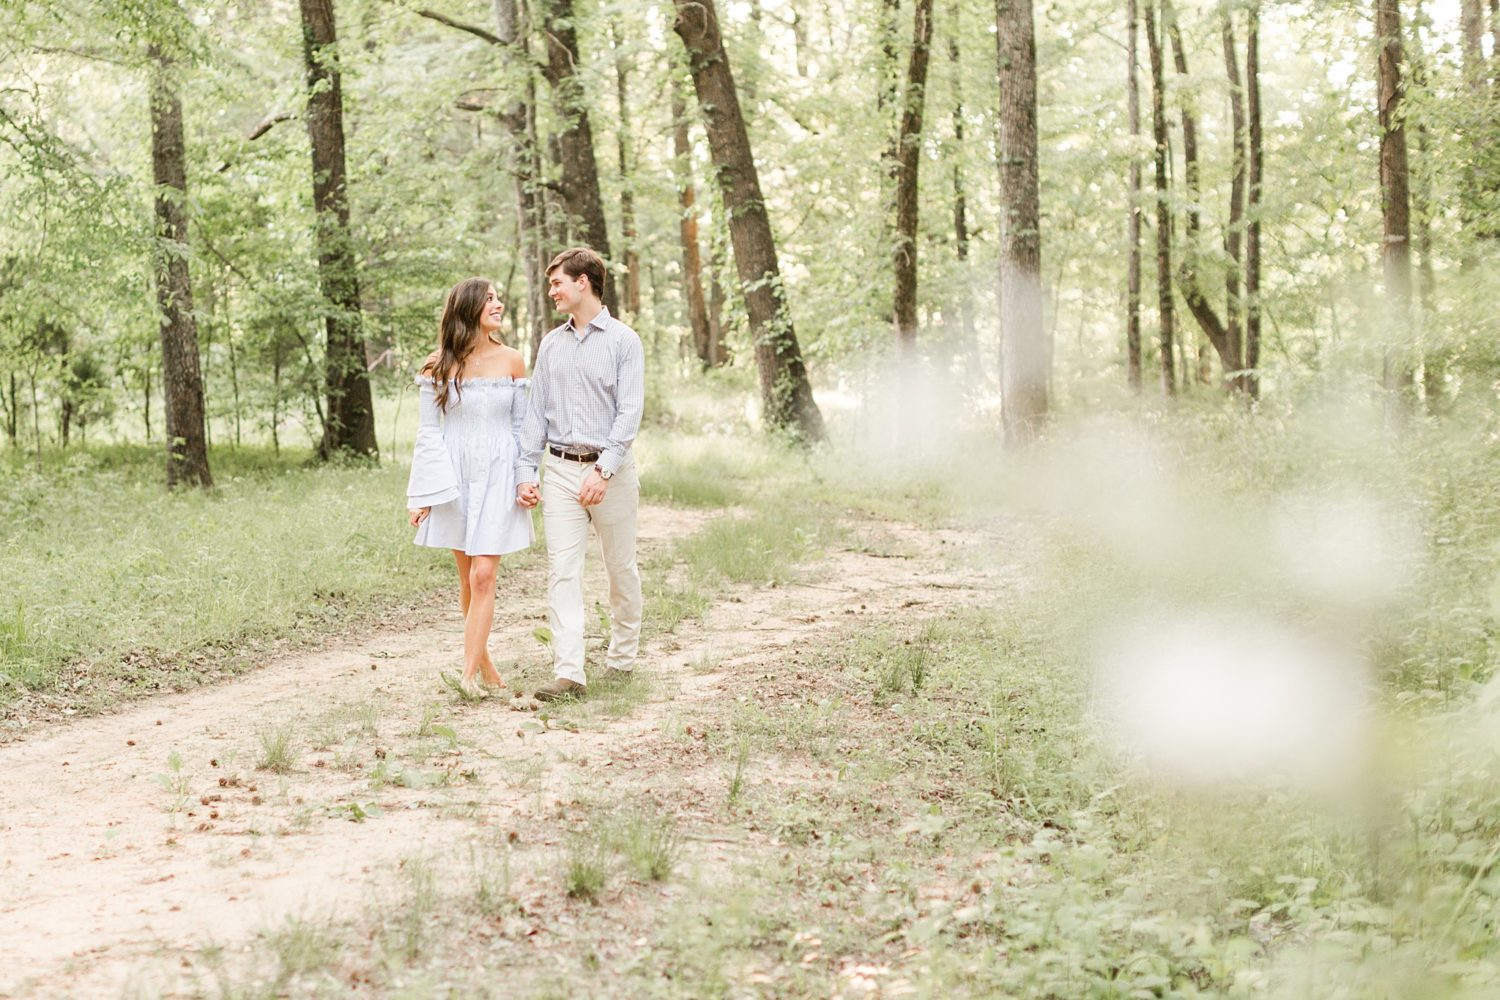 http://amy-hutchinson.com/wp-content/uploads/2018/05/ahp-summer-tennessee-farm-engagement_0004.jpg